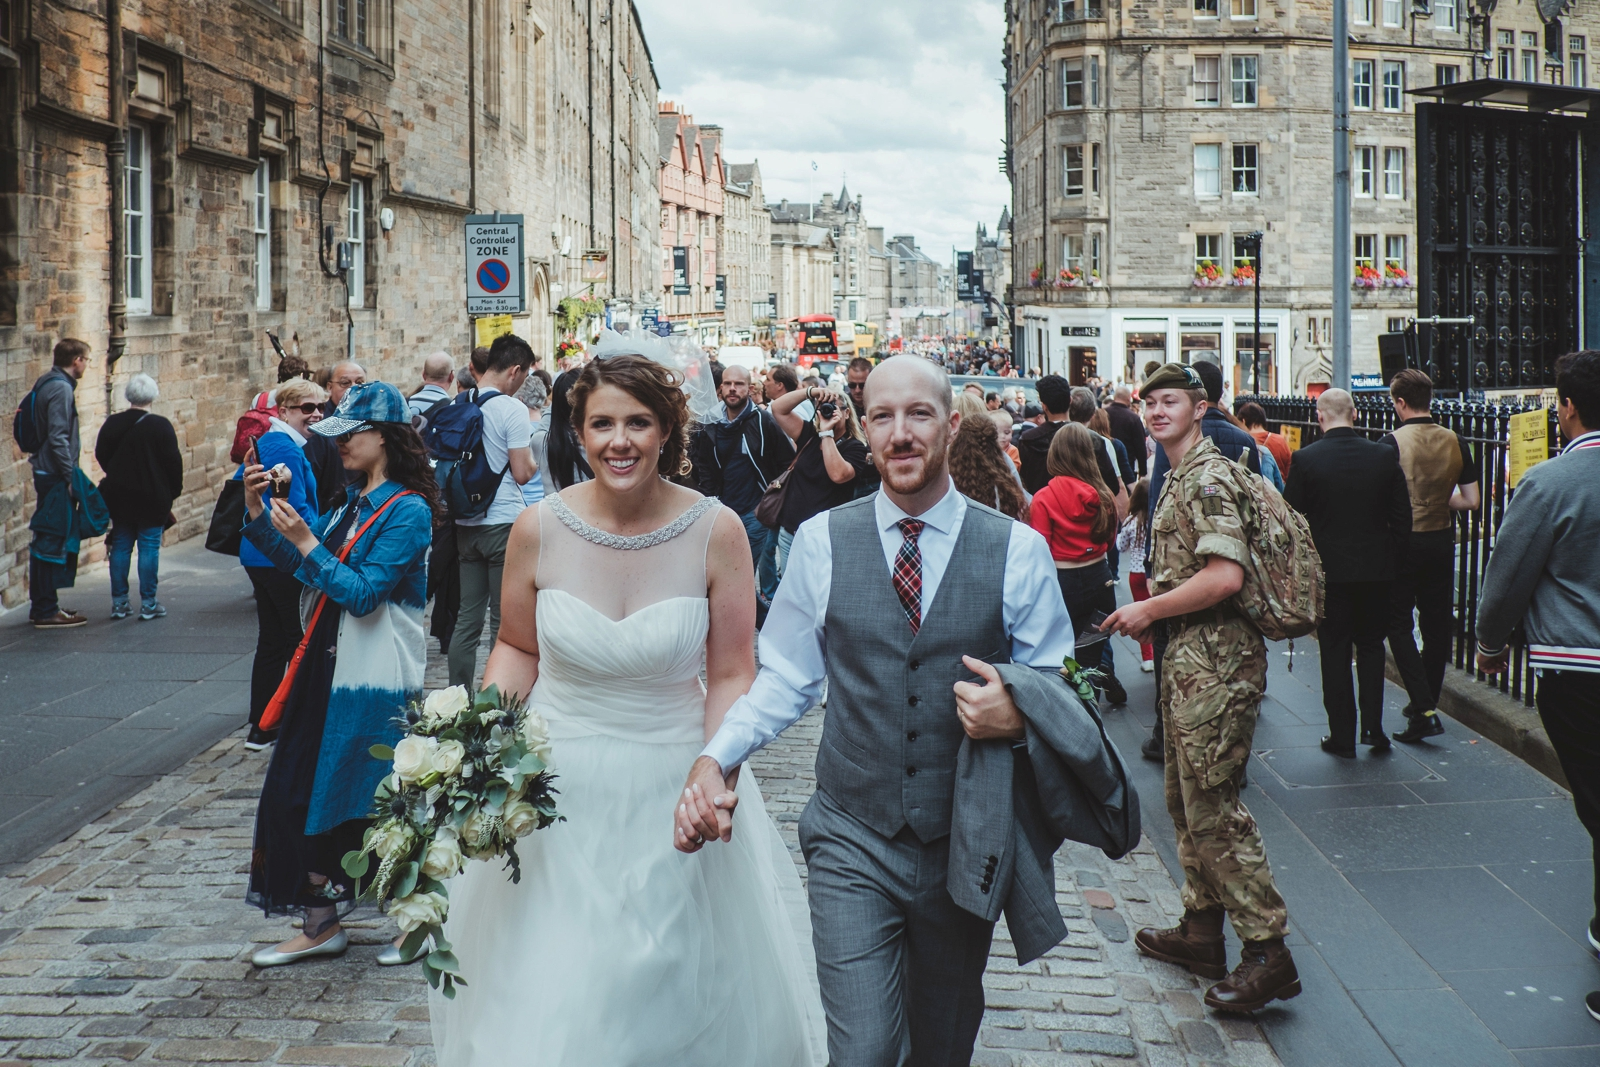 Angela___Andy_s_Edinburgh_elopement_by_Barry_Forshaw_0295.jpg